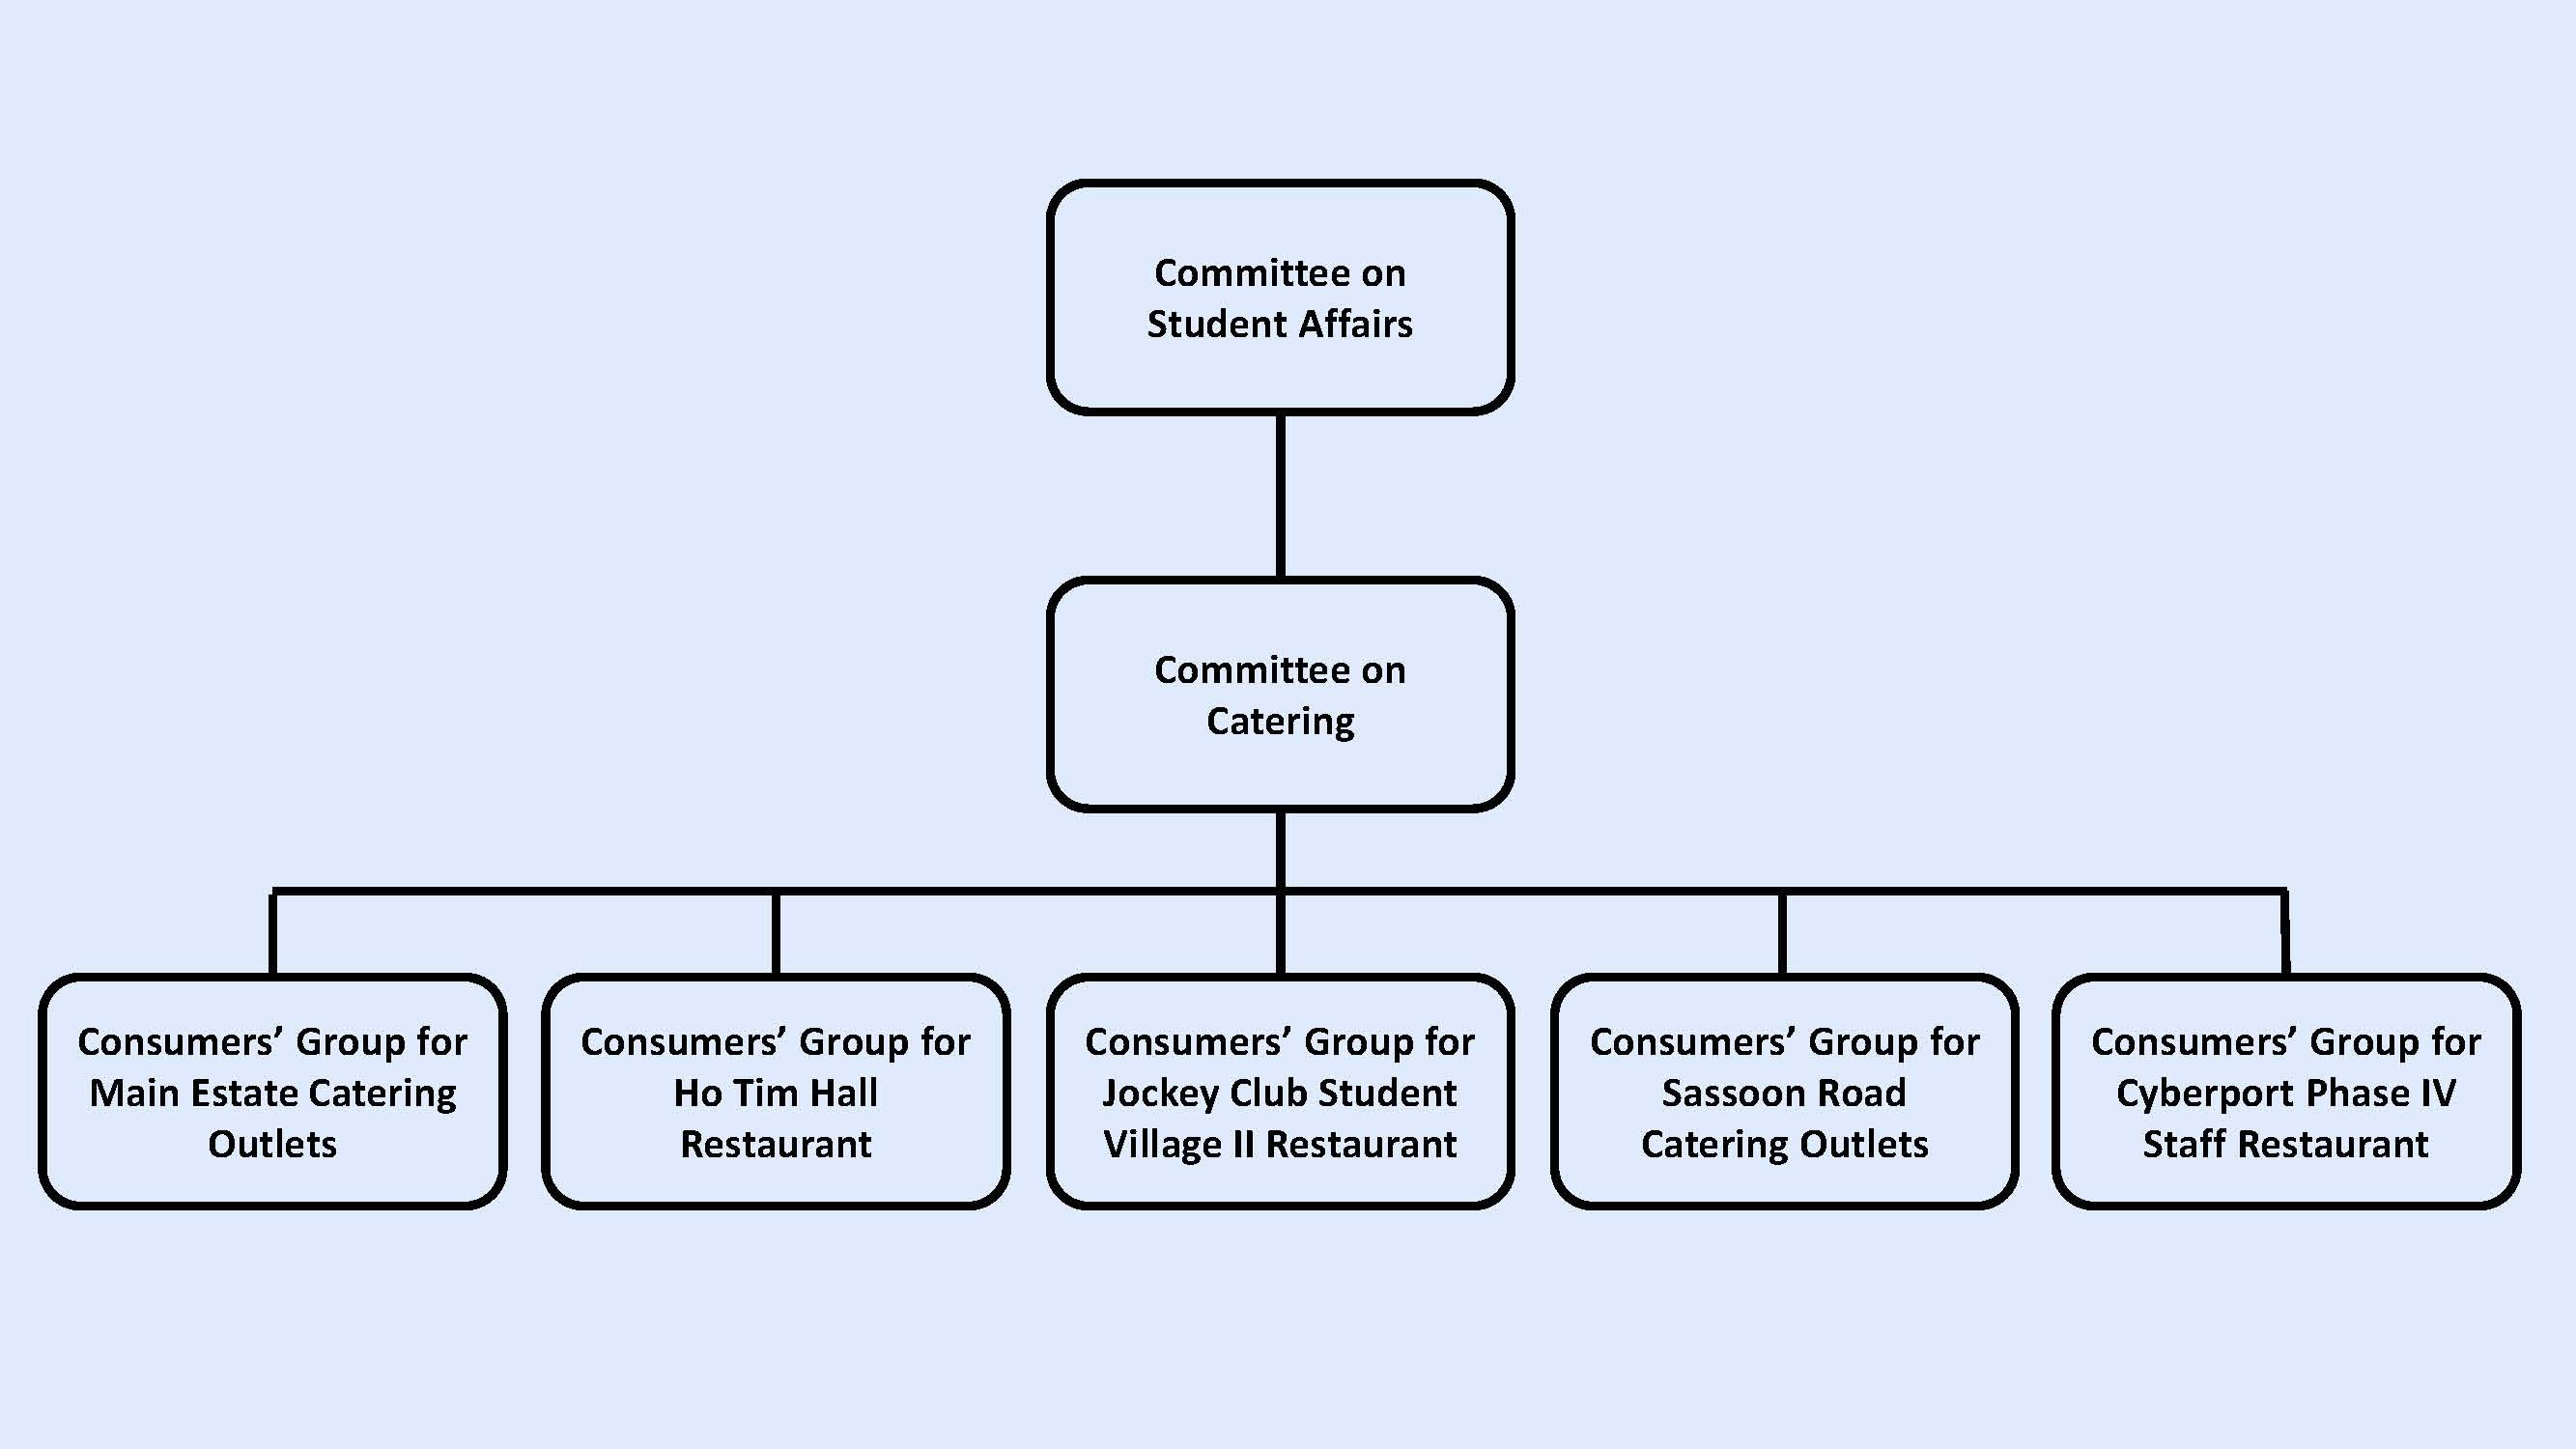 The Committees Structure